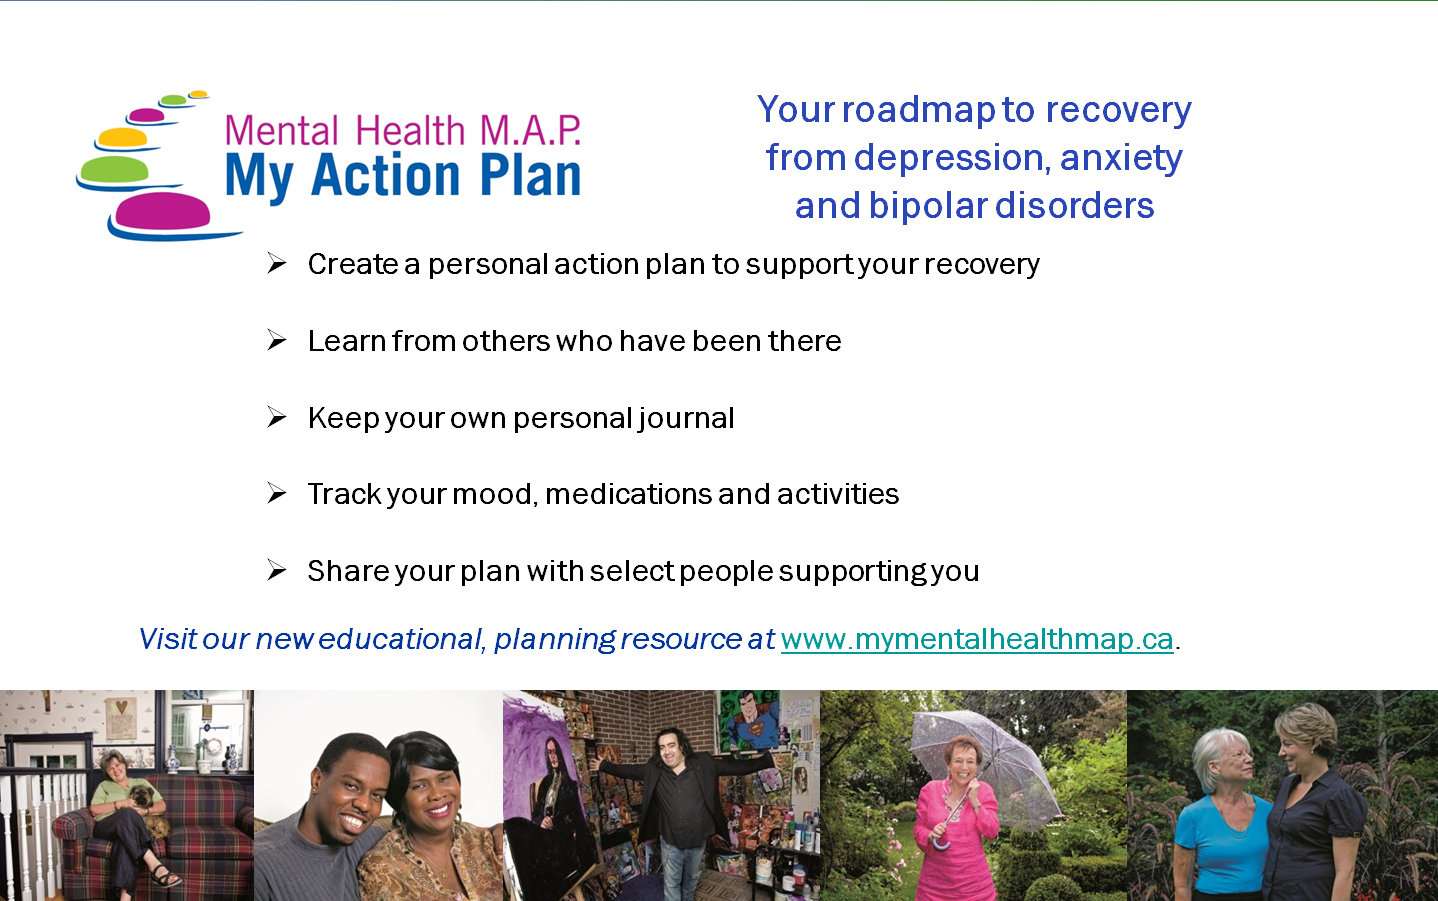 Introducing: Mental Health M.A.P. (My Action Plan) | Mood ...